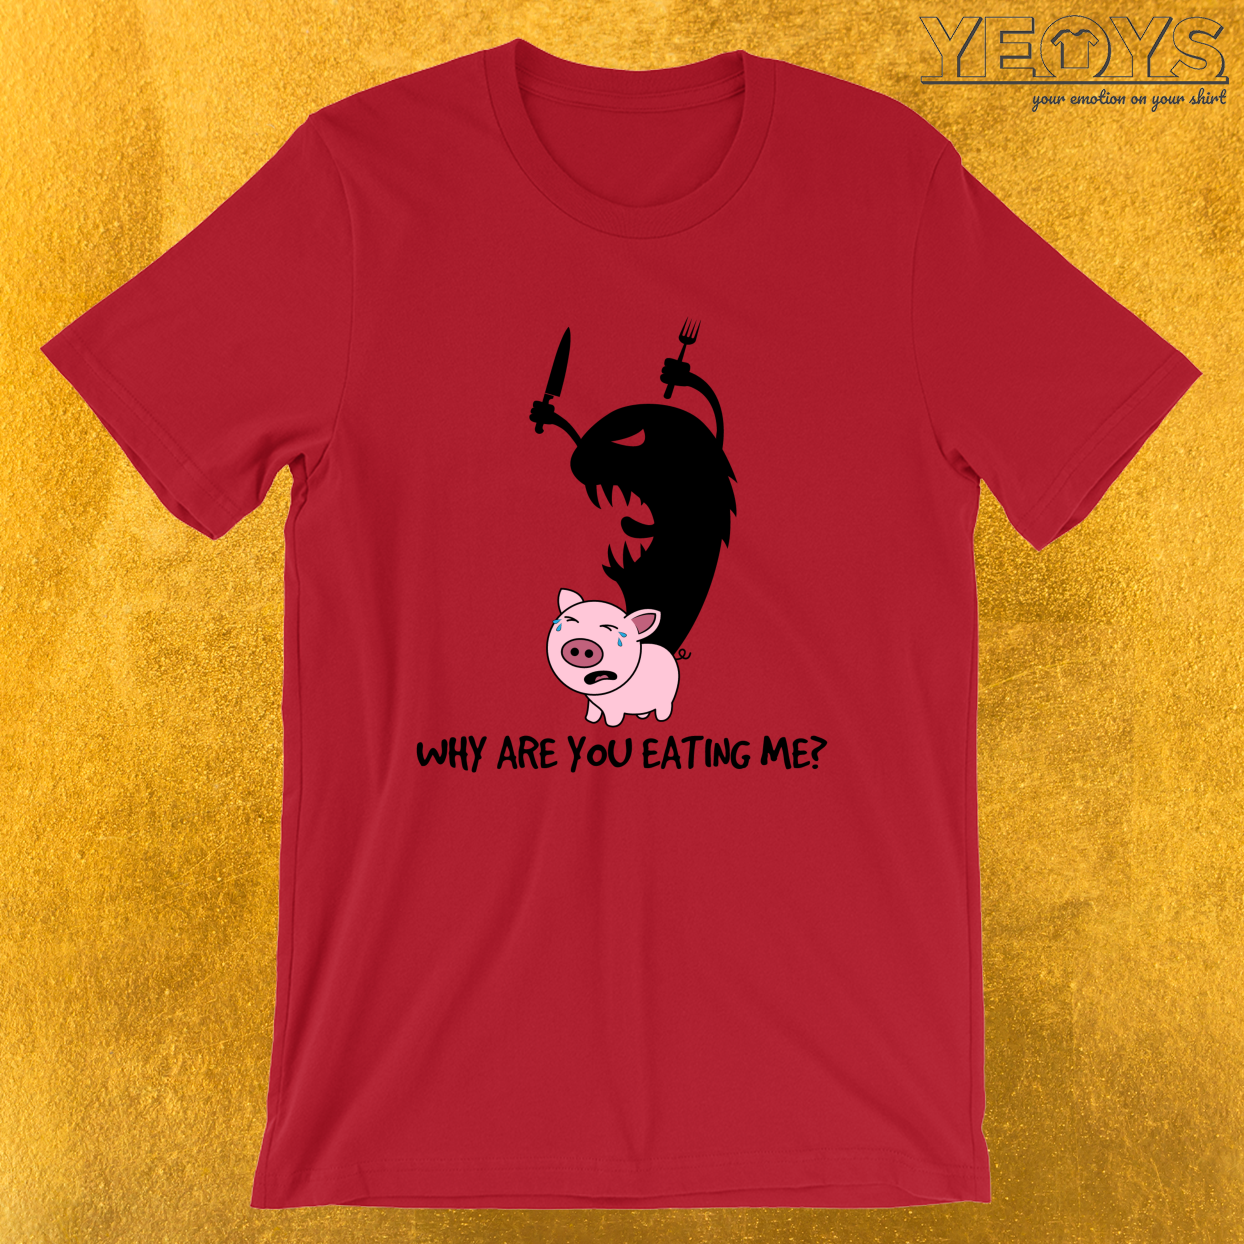 Why Are You Eating Me – Funny Horror Movie Tee